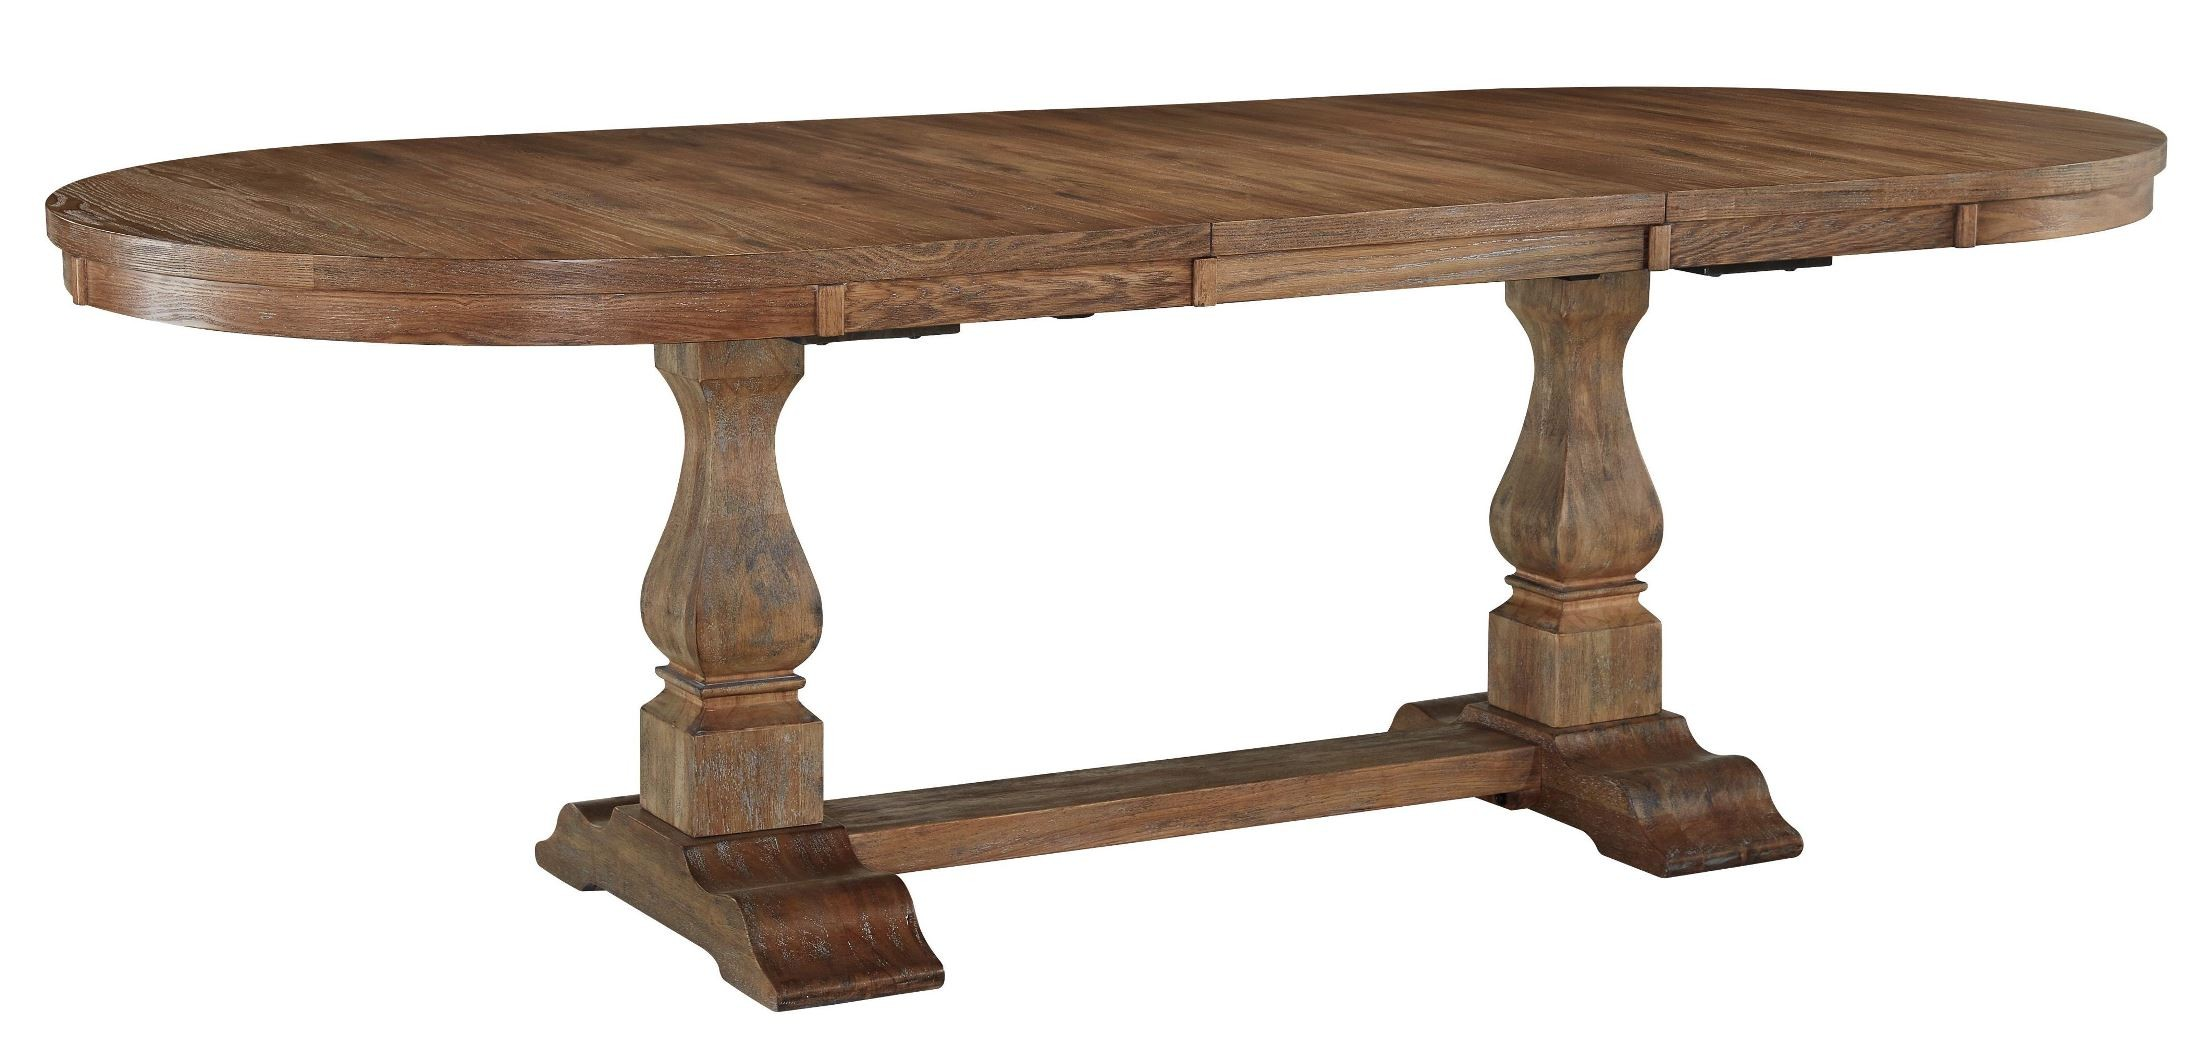 Danimore Light Brown Extendable Oval Dining Table from  : d473 45t 45b sw from colemanfurniture.com size 2200 x 1040 jpeg 244kB